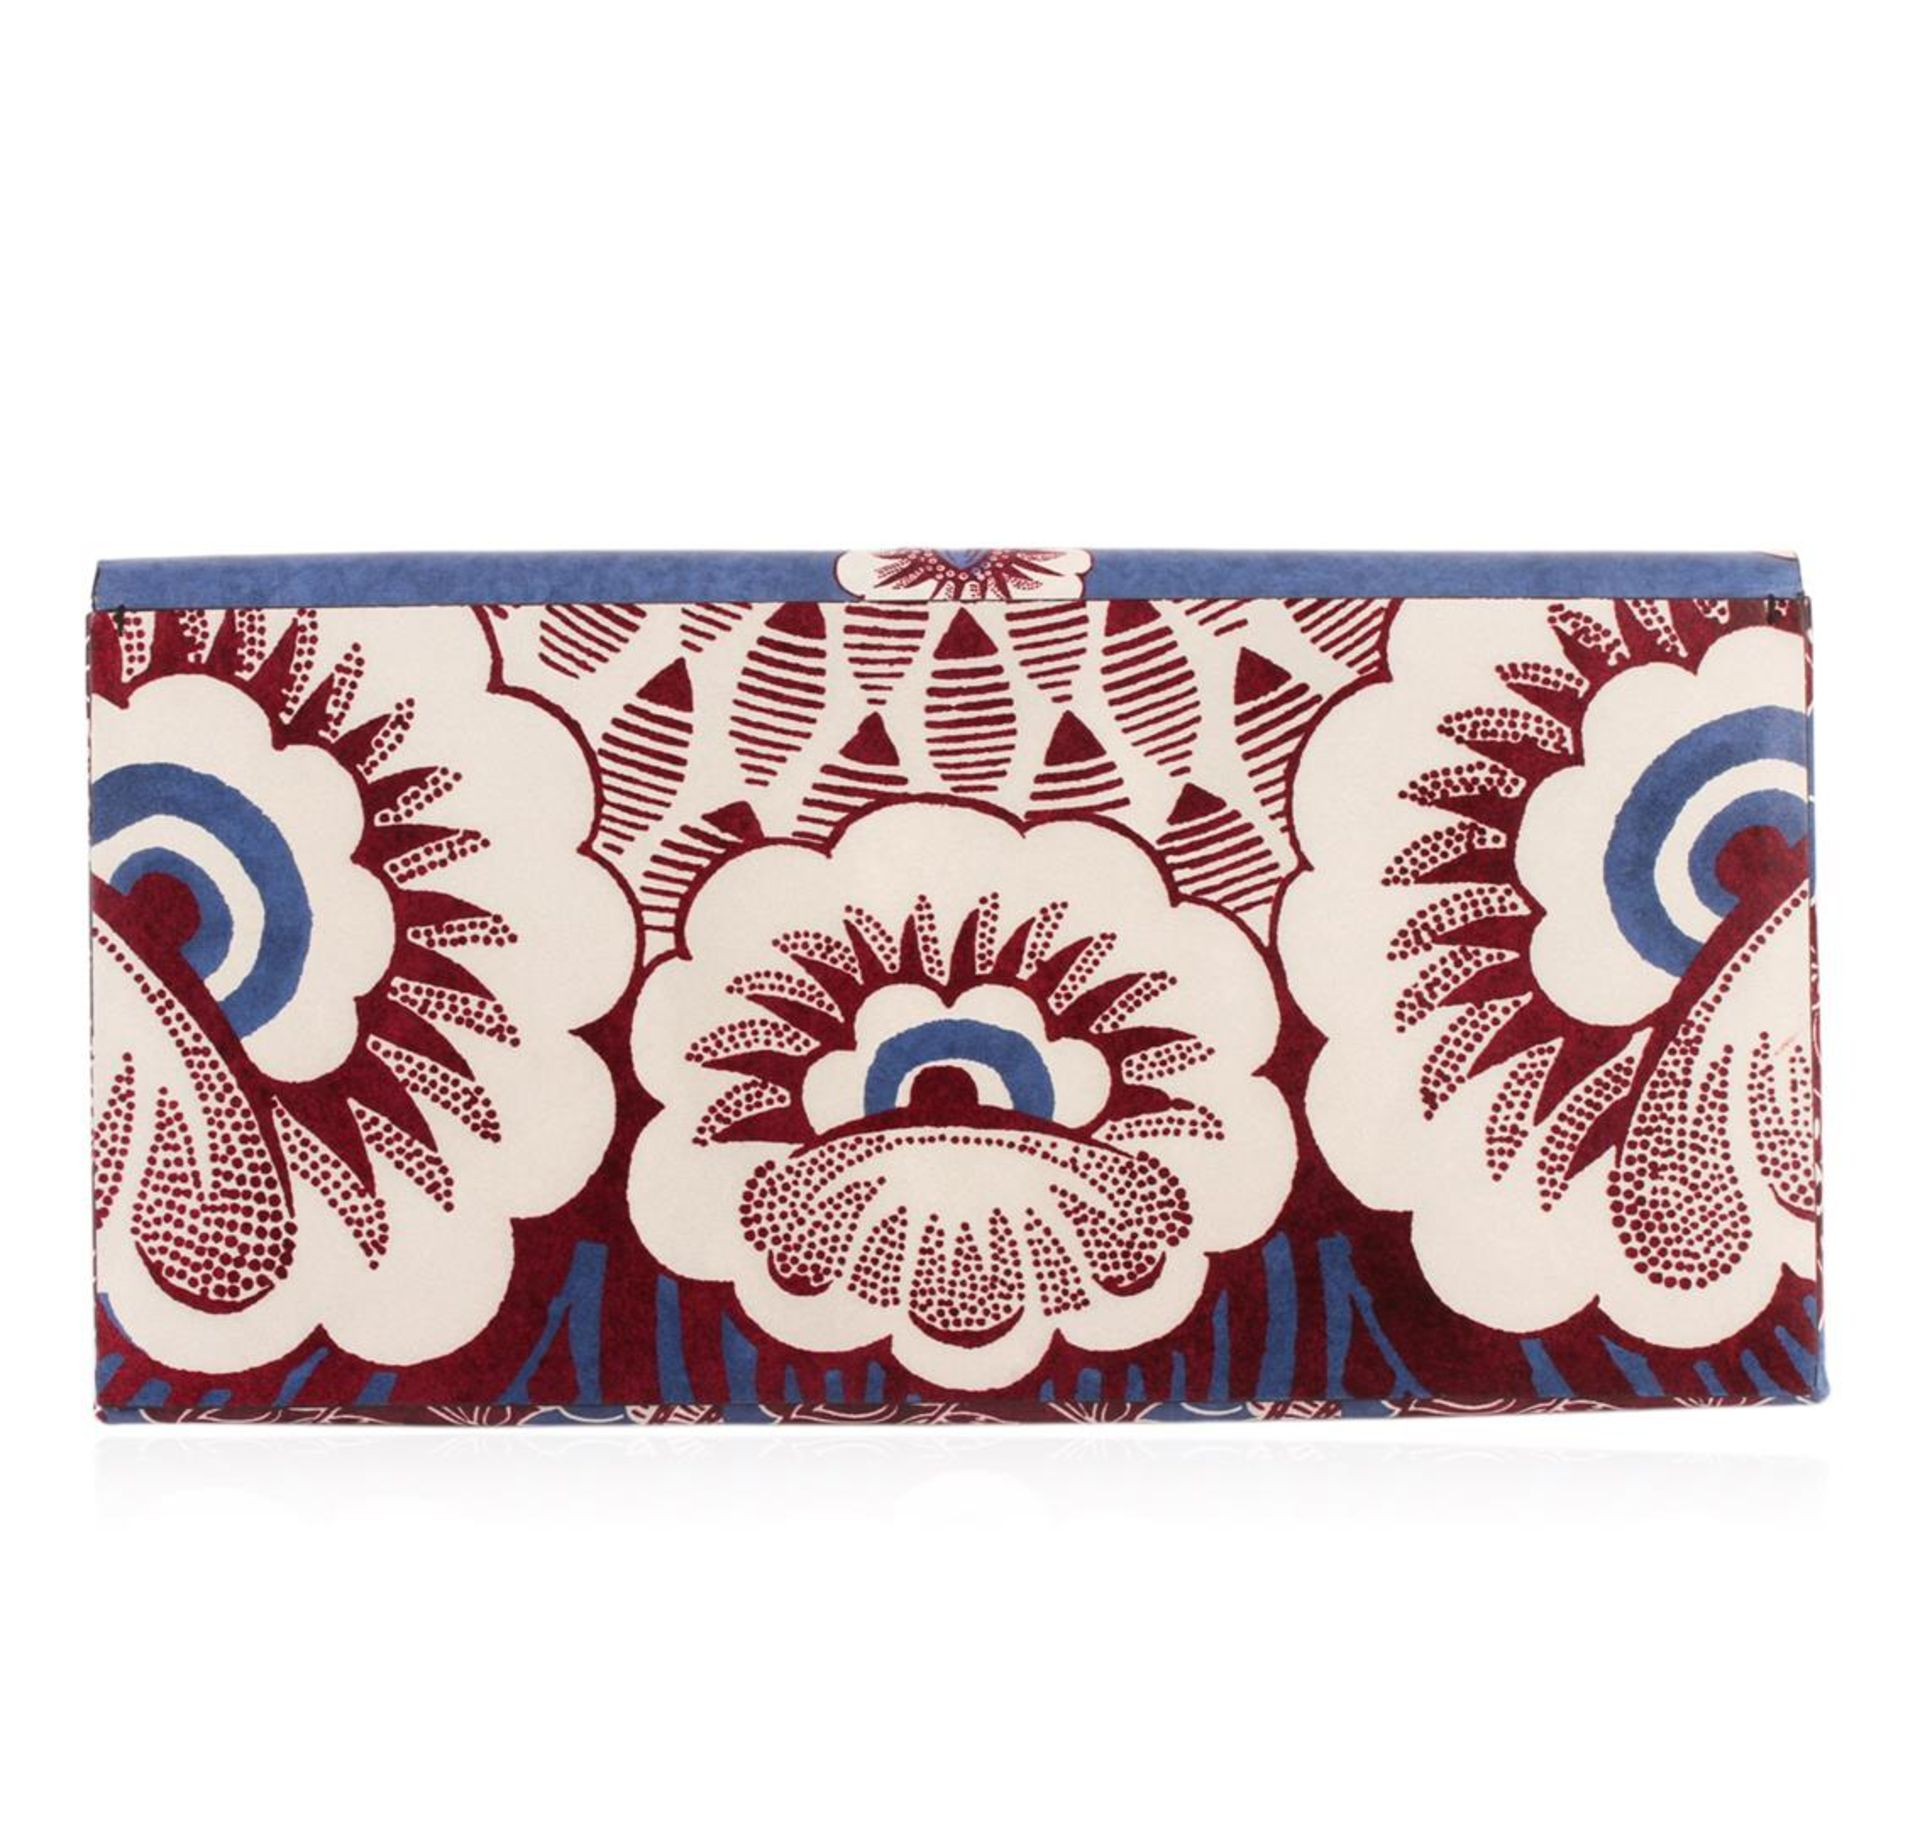 Valentino 2015 Floral Clutch - Image 2 of 5